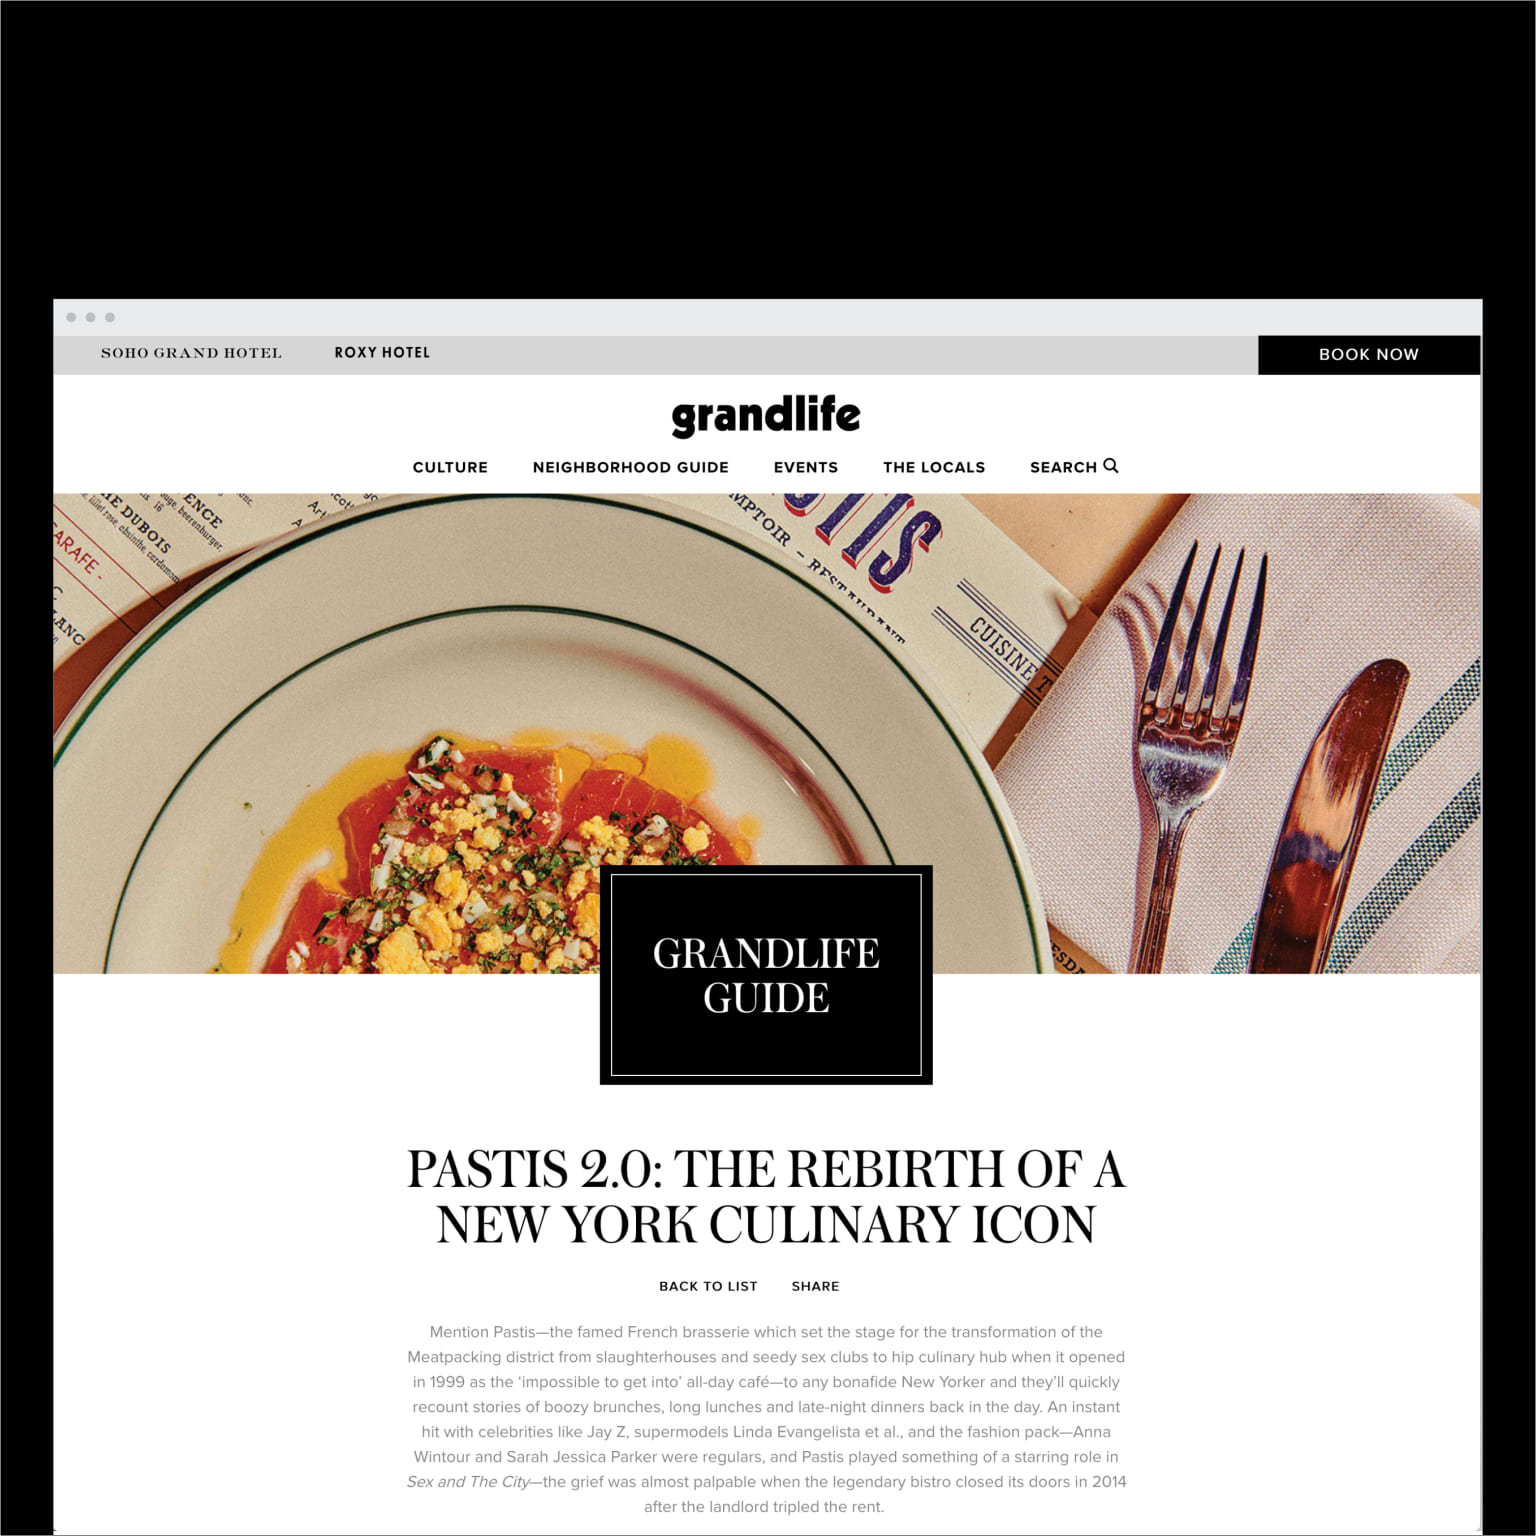 Grandlife - A culture and lifestyle guide to downtown New York in partnership with Soho Grand Hotel and Roxy Hotel.